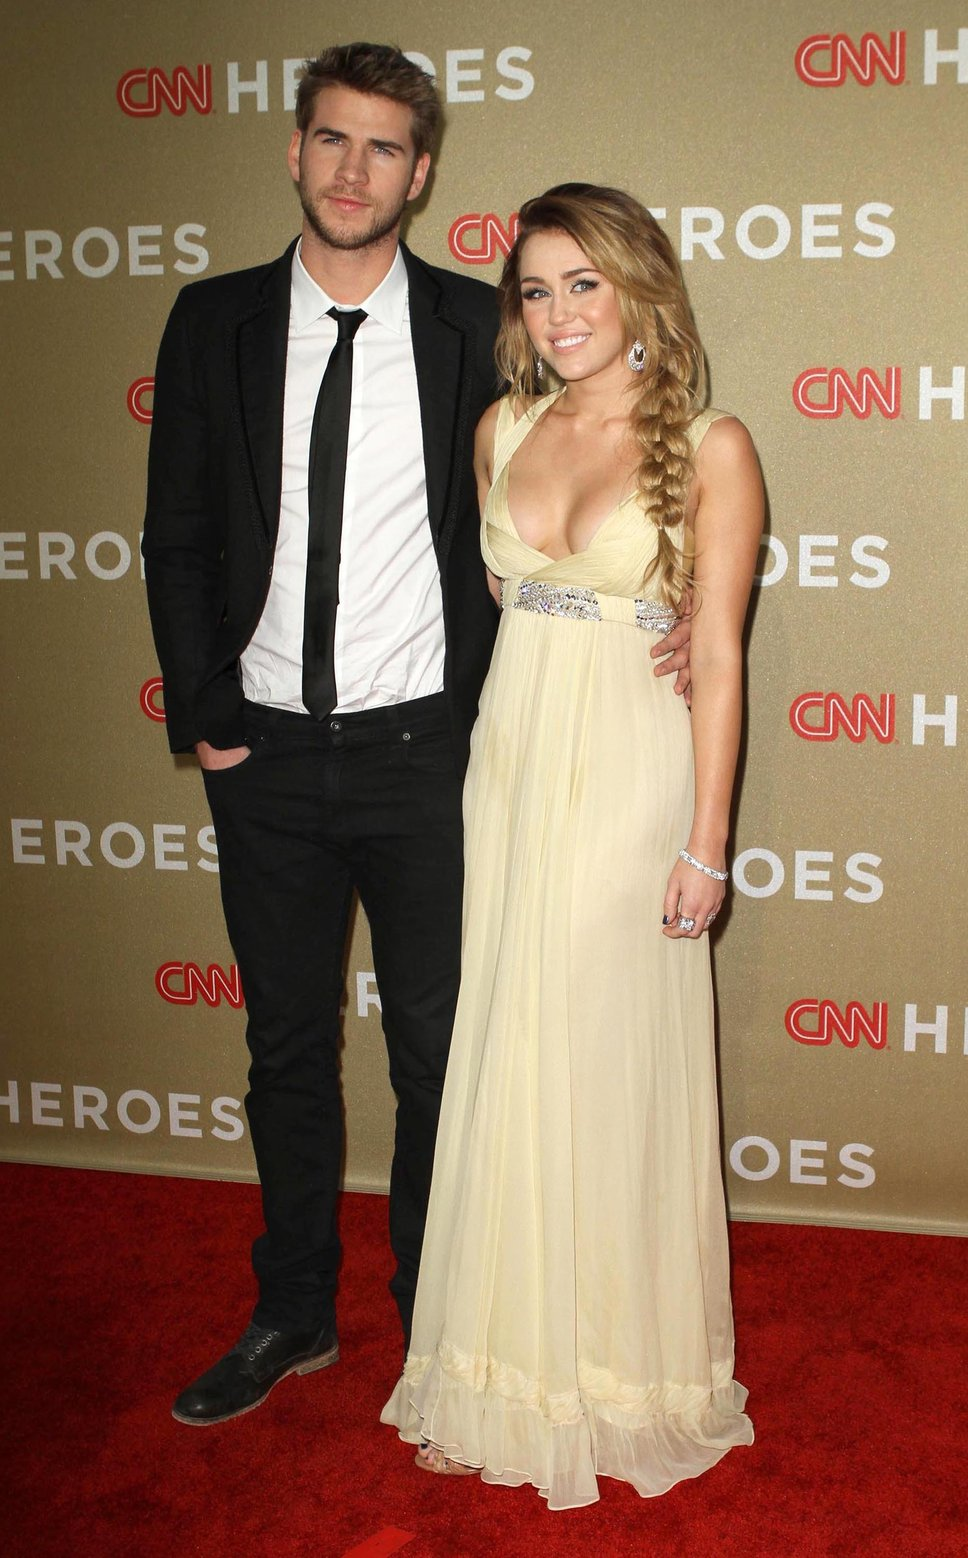 The Reason Why Miley Cyrus And Liam Hemsworth S Wedding Never Happened Www Raveituptv Com